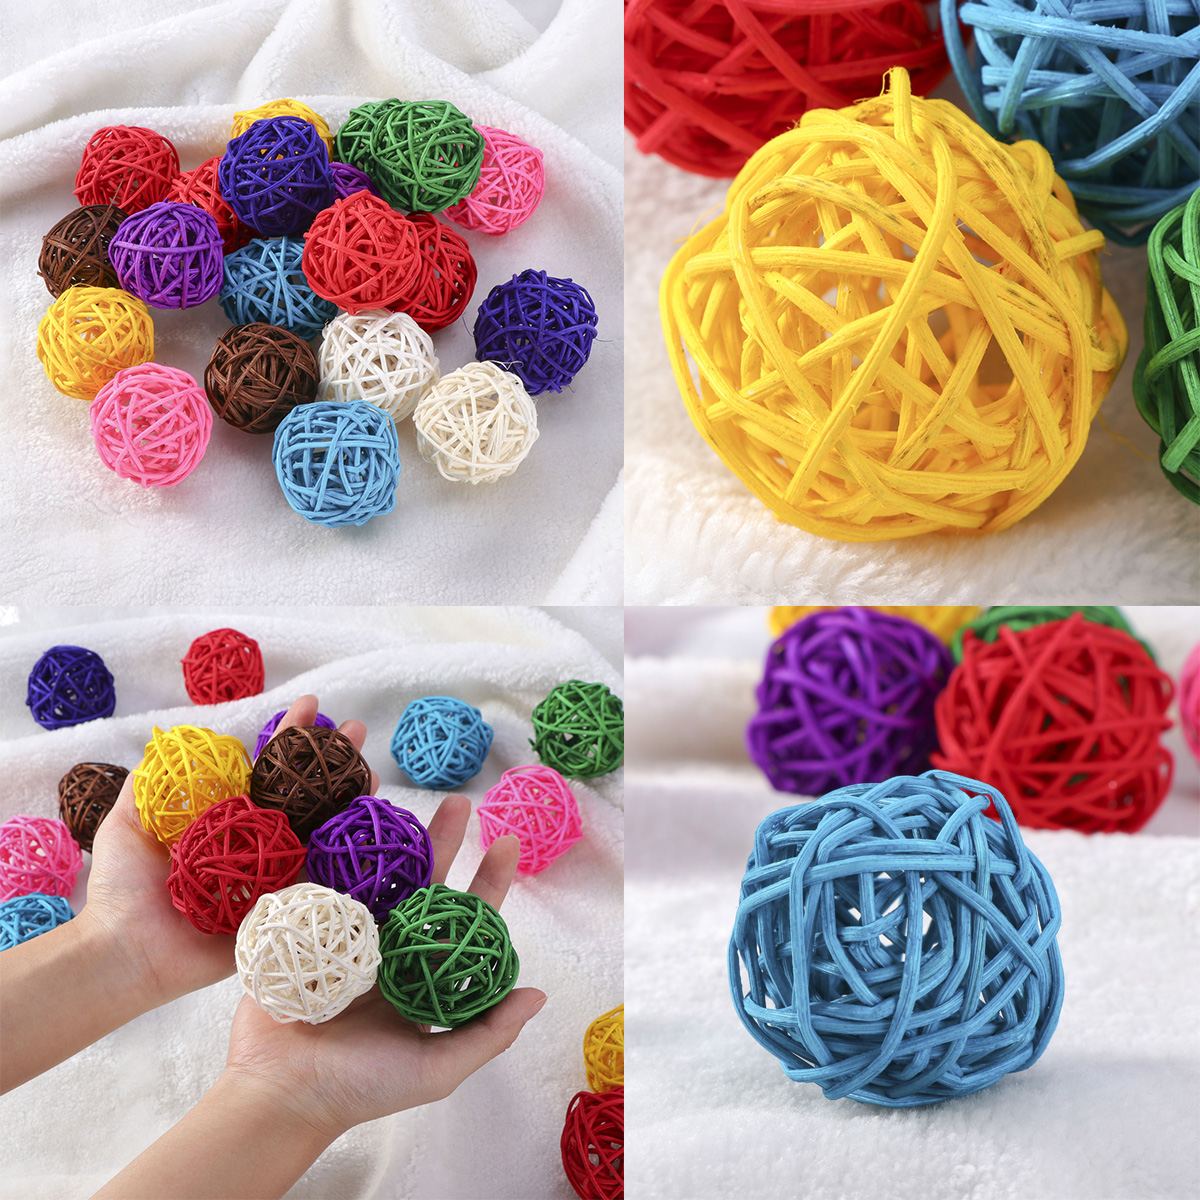 Air Freshener assorted Color 10pcs Wicker Rattan Ball Wedding Christmas Party Hanging Dec Nursery Mobiles 3cm Interior Accessories